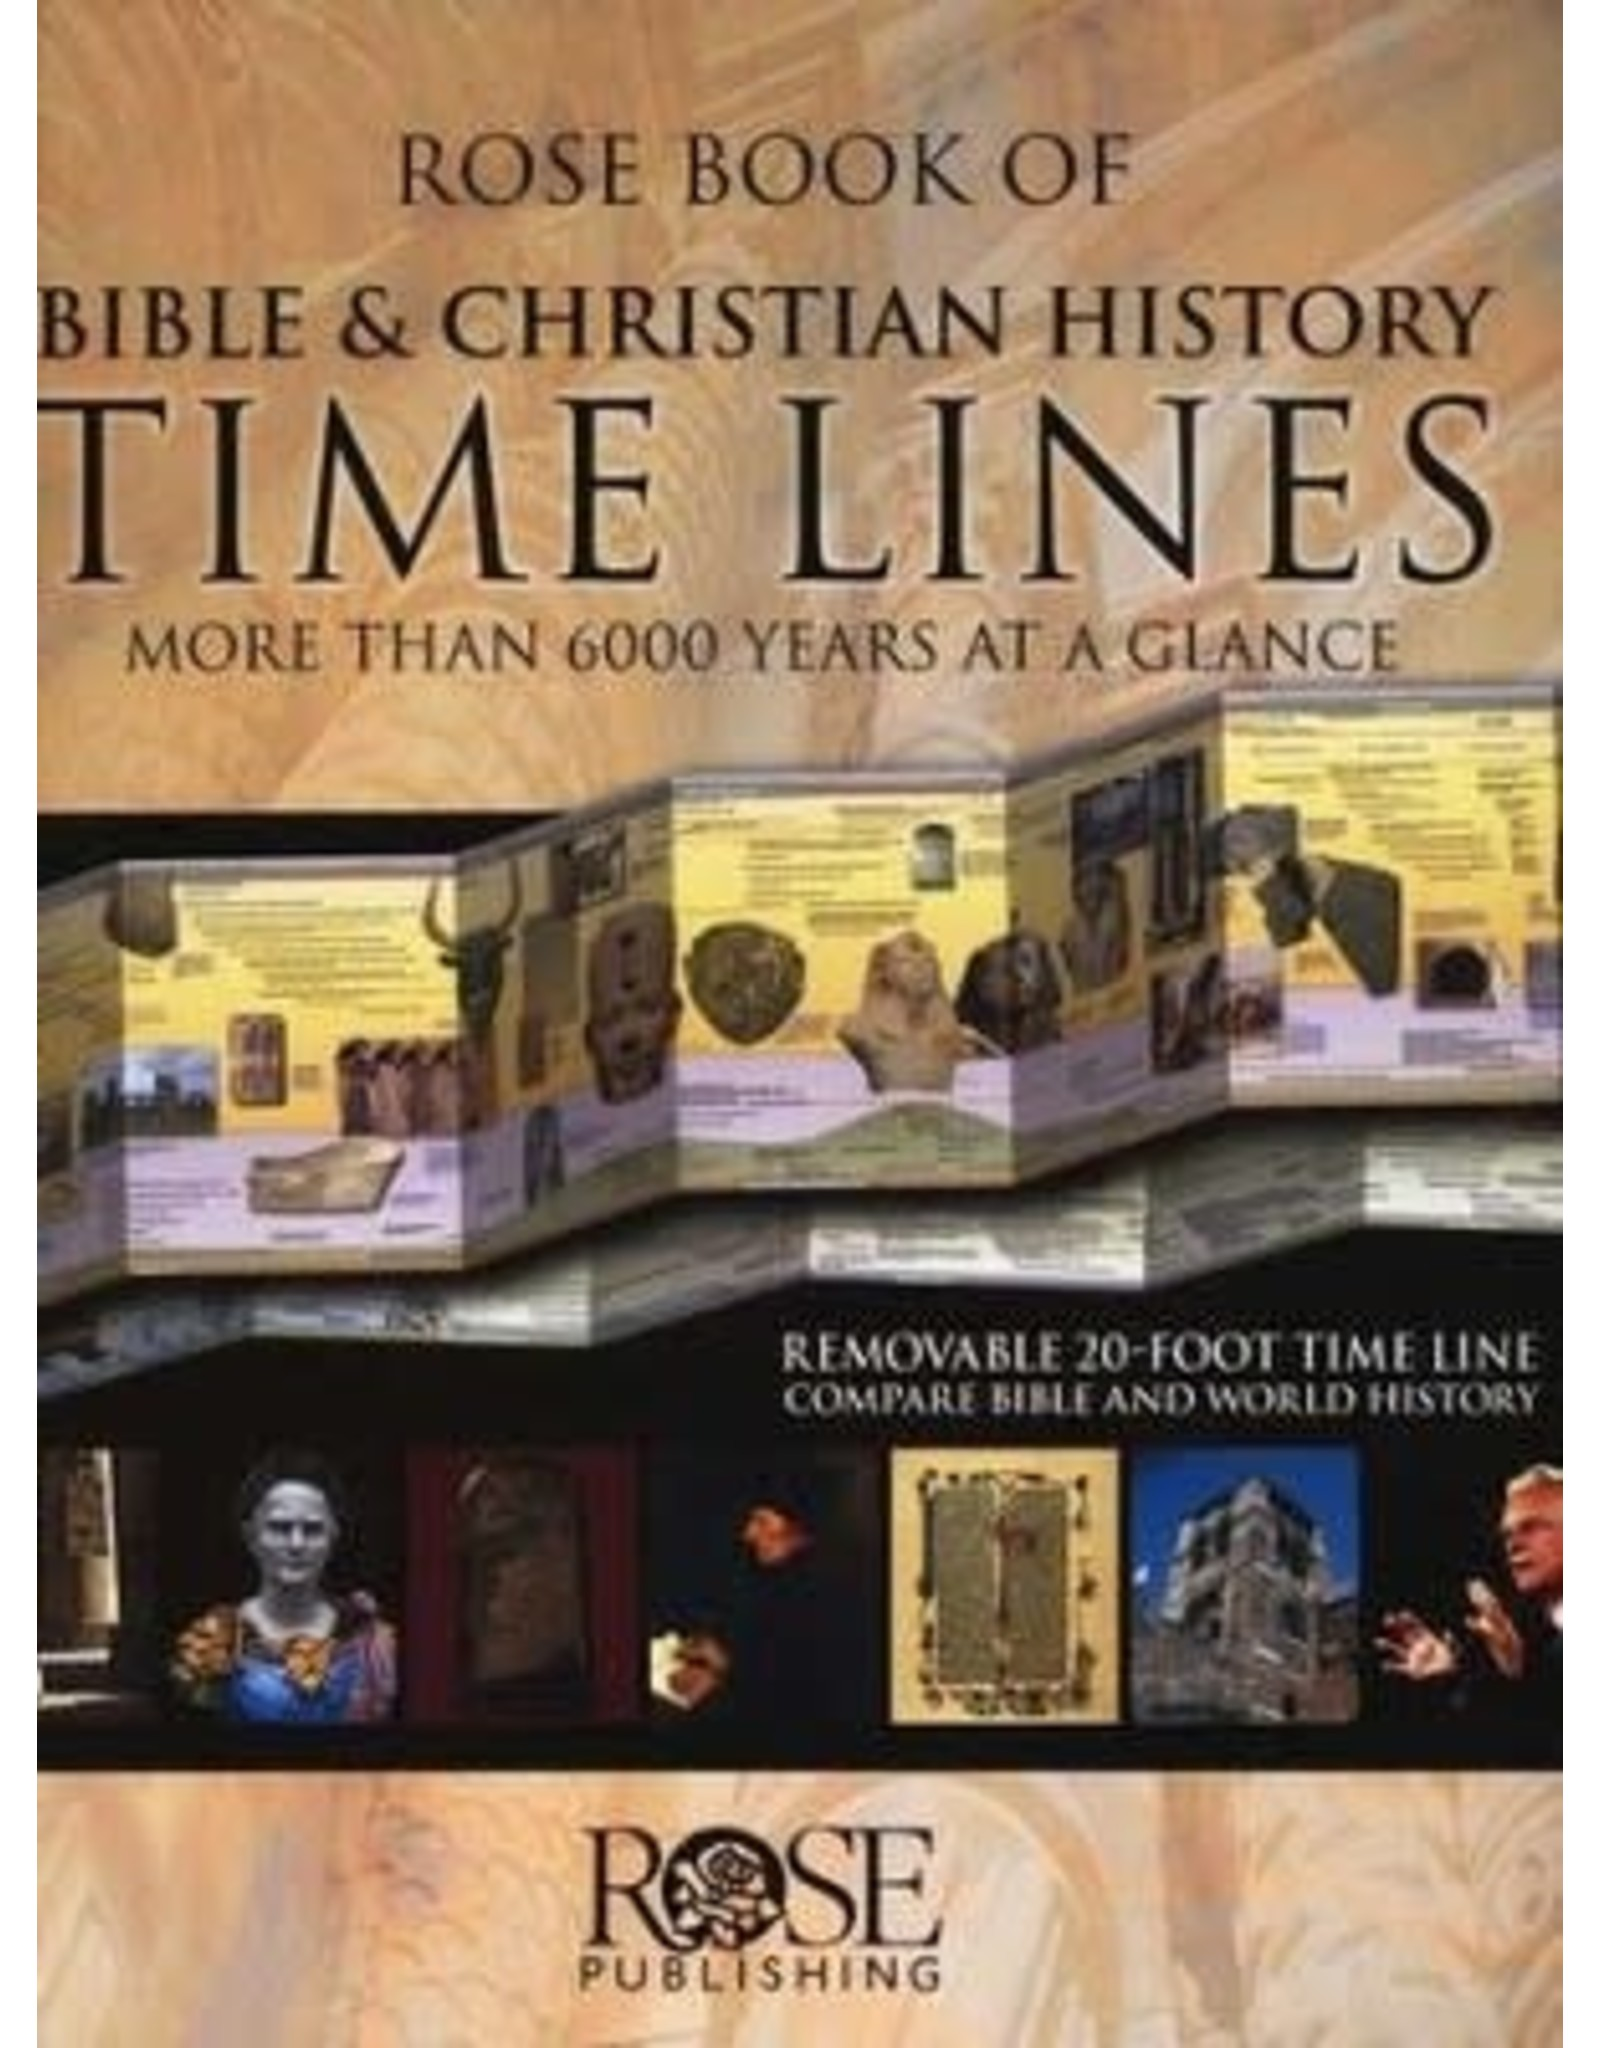 Rose Publishers Roses Book of Bible and Christian History Timelines